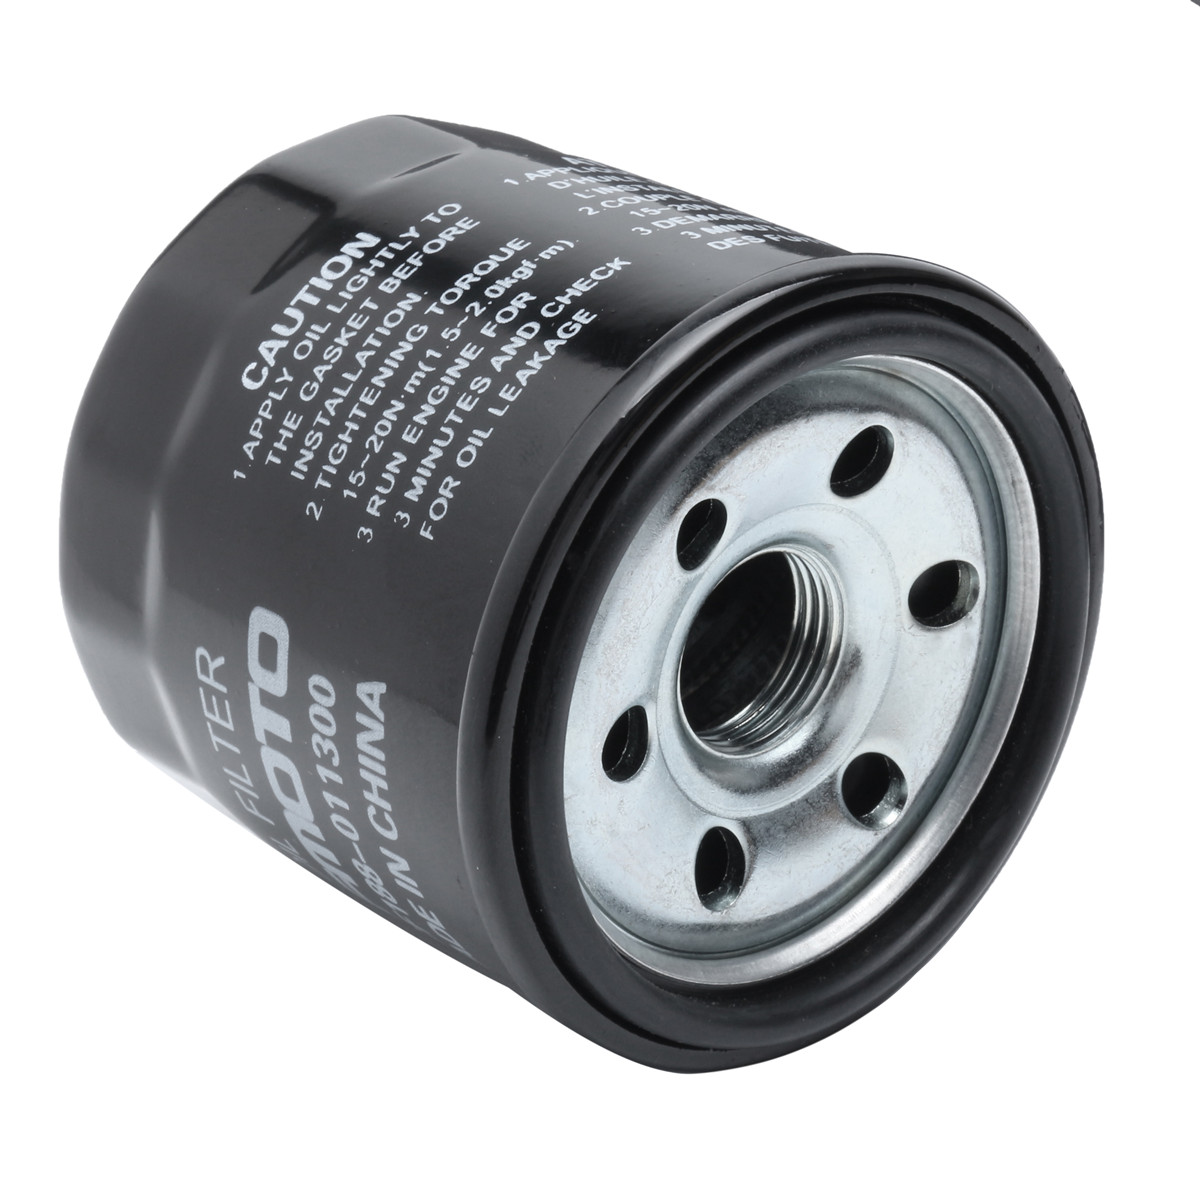 400 OIL FILTER Fits FOR All HiSUN 250 550 450 700 /& 750 UTVs and ATVs 500